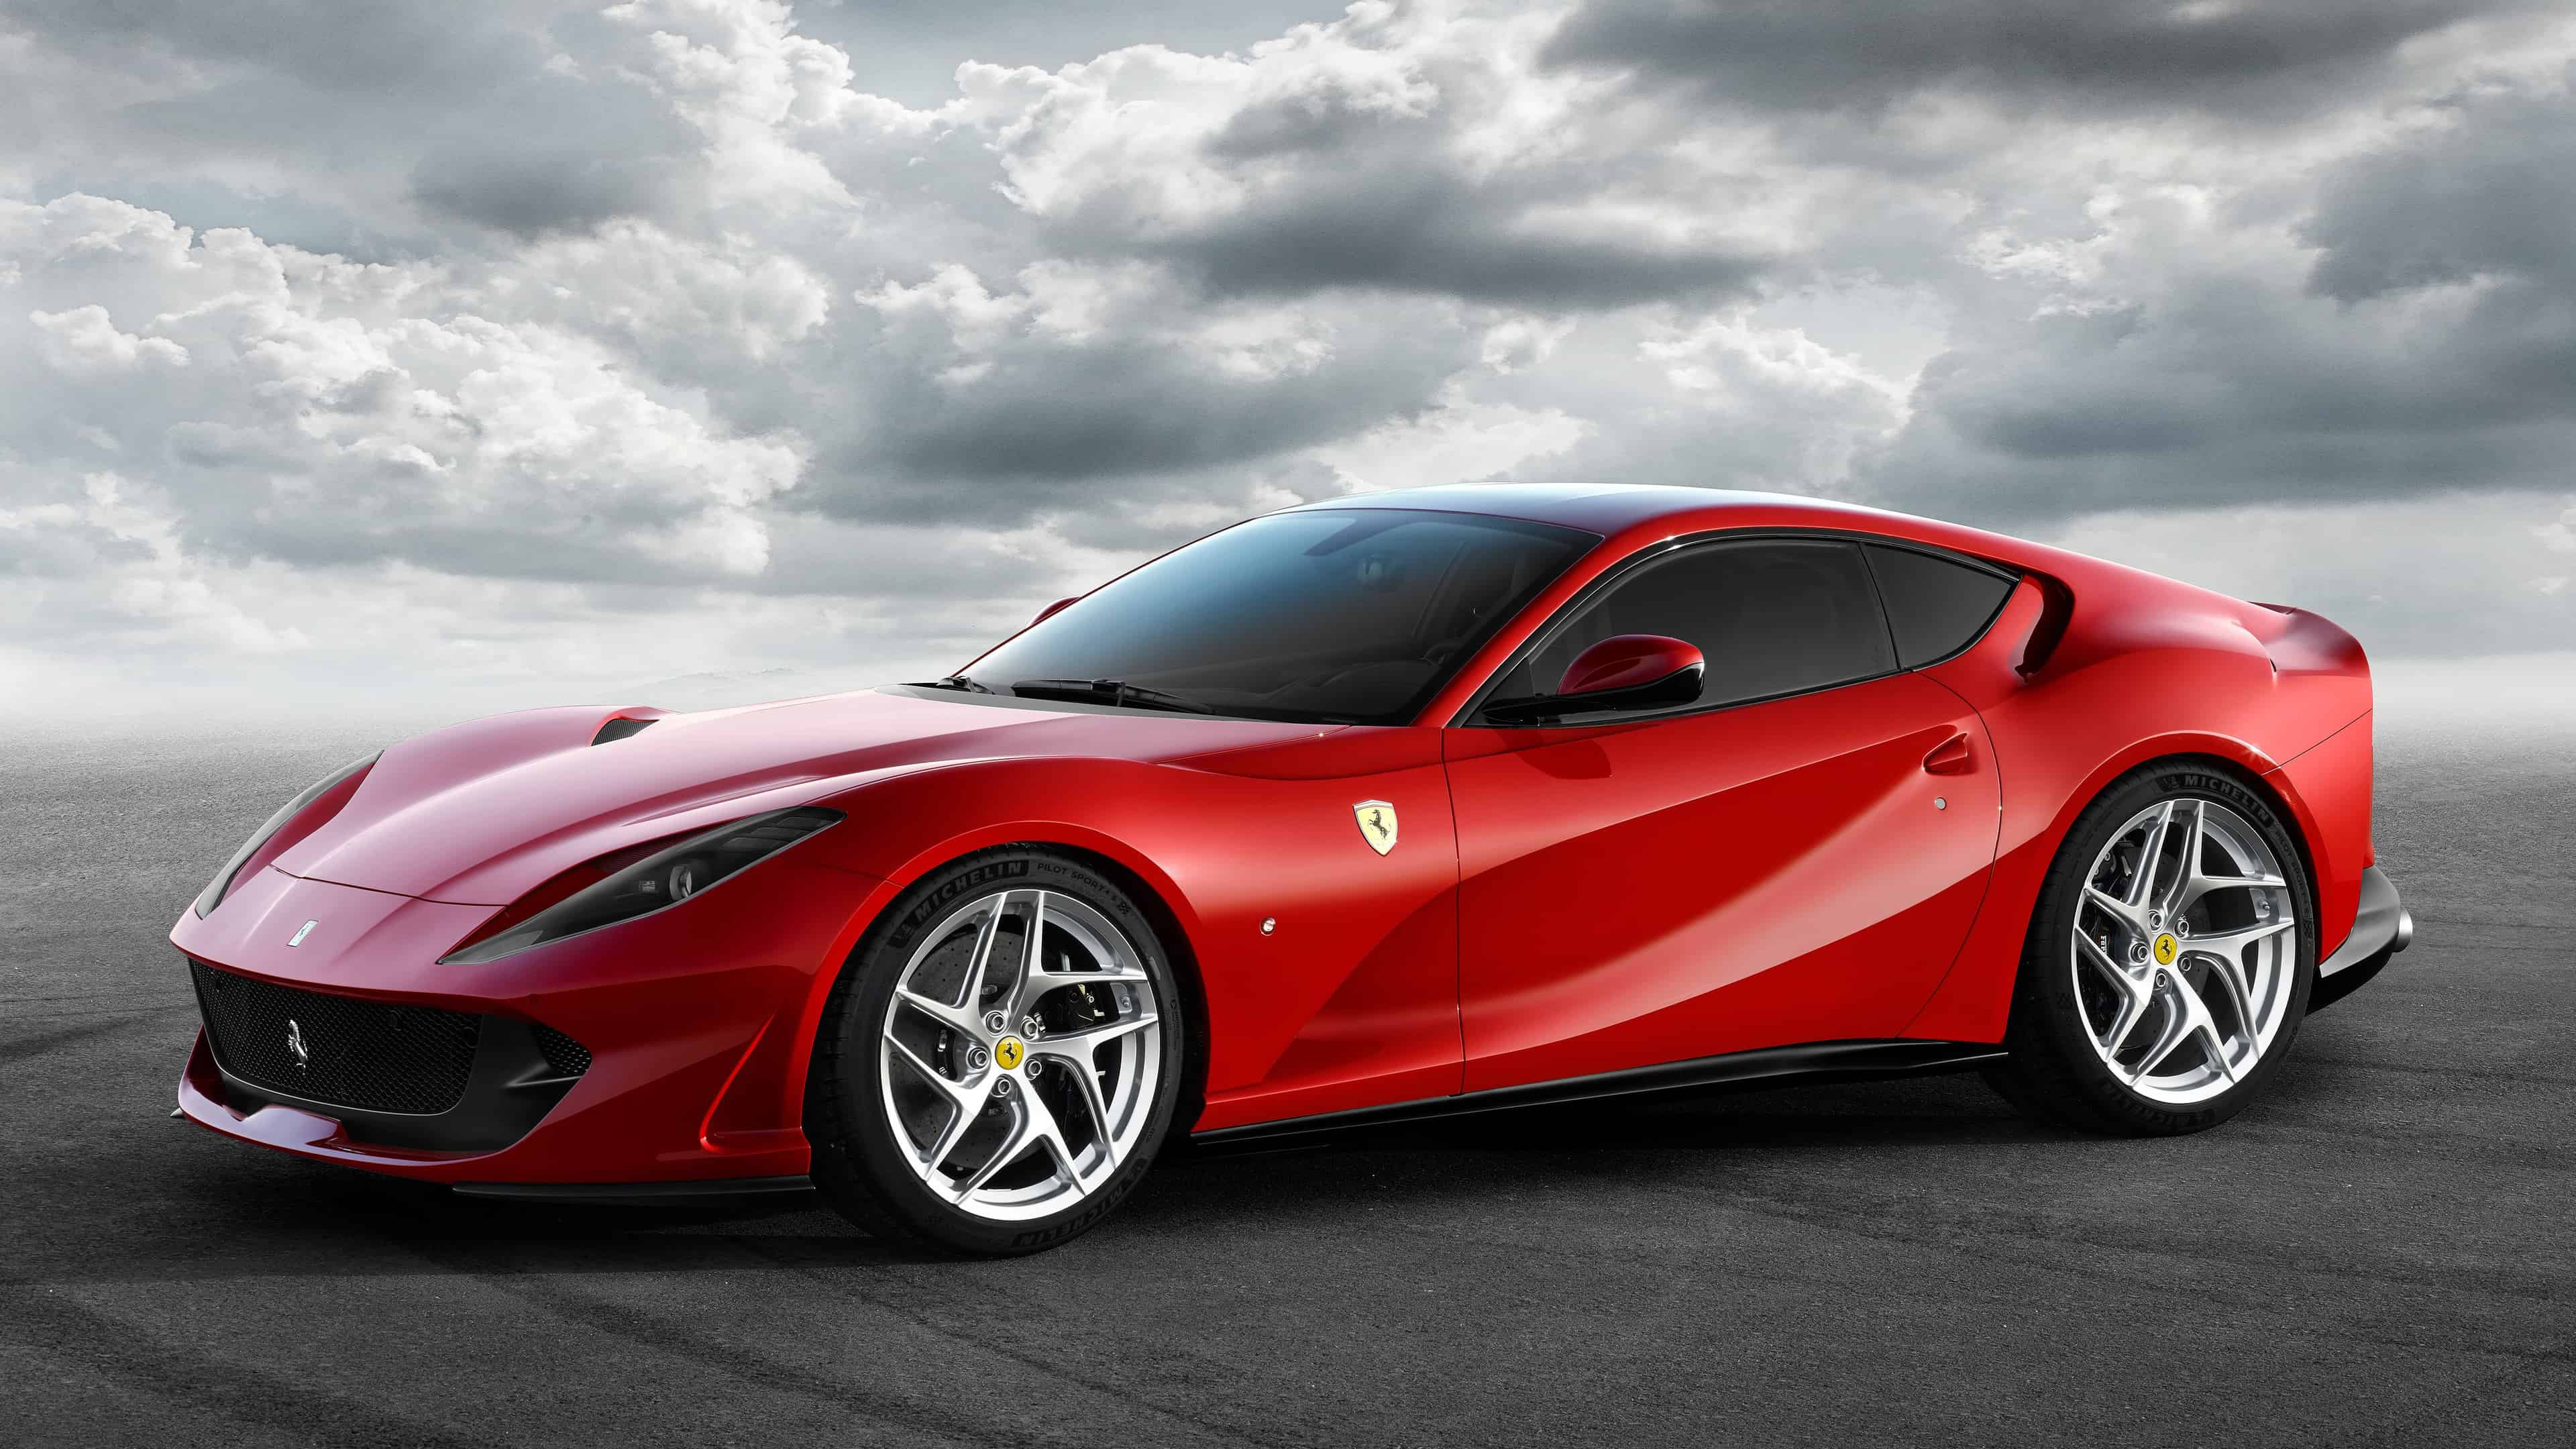 ferrari 812 superfast uhd 4k wallpaper